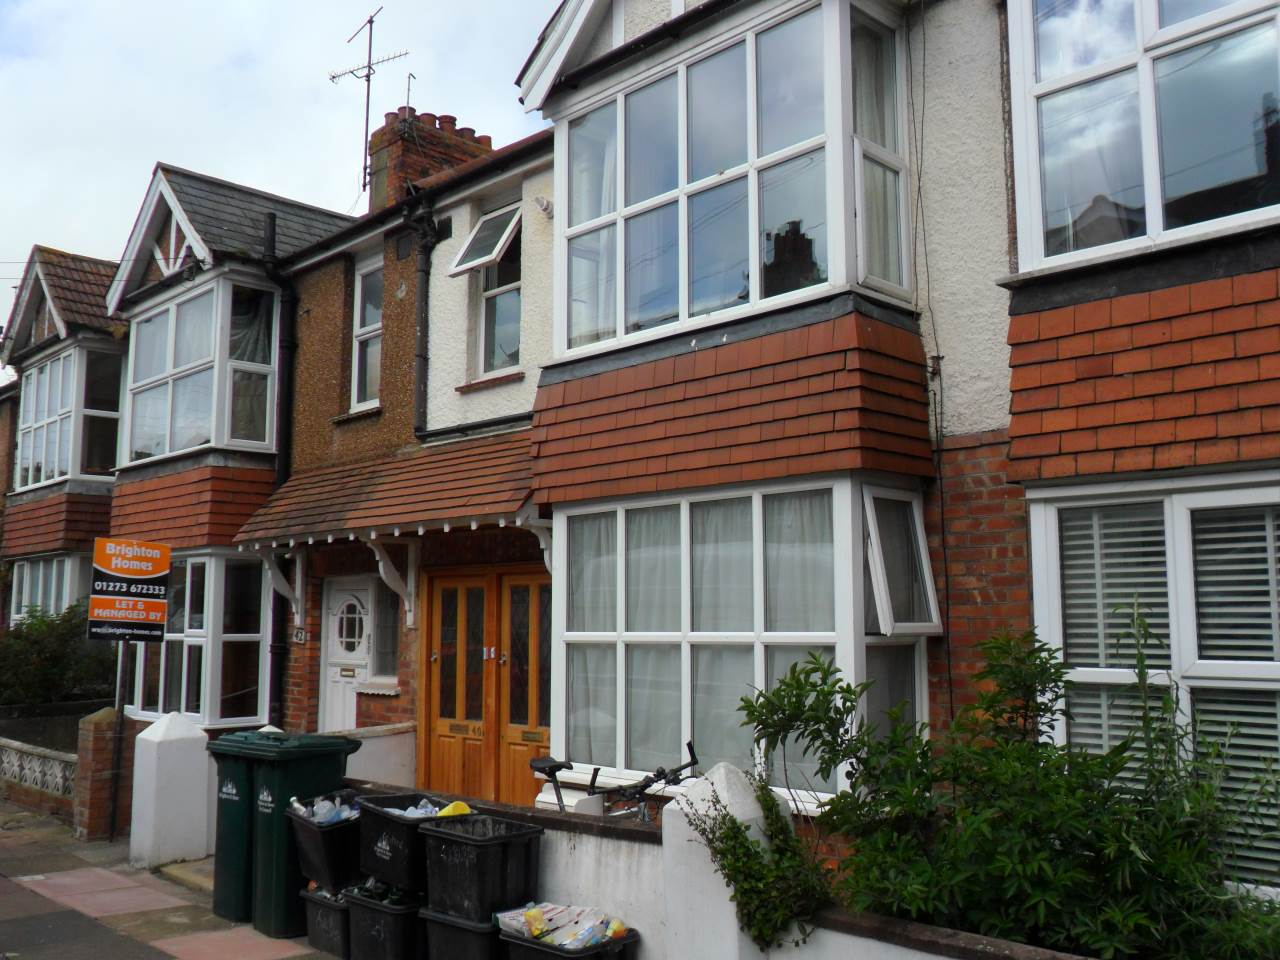 4 bed maisonette to rent in Stanmer Park Road, Brighton - Property Image 1